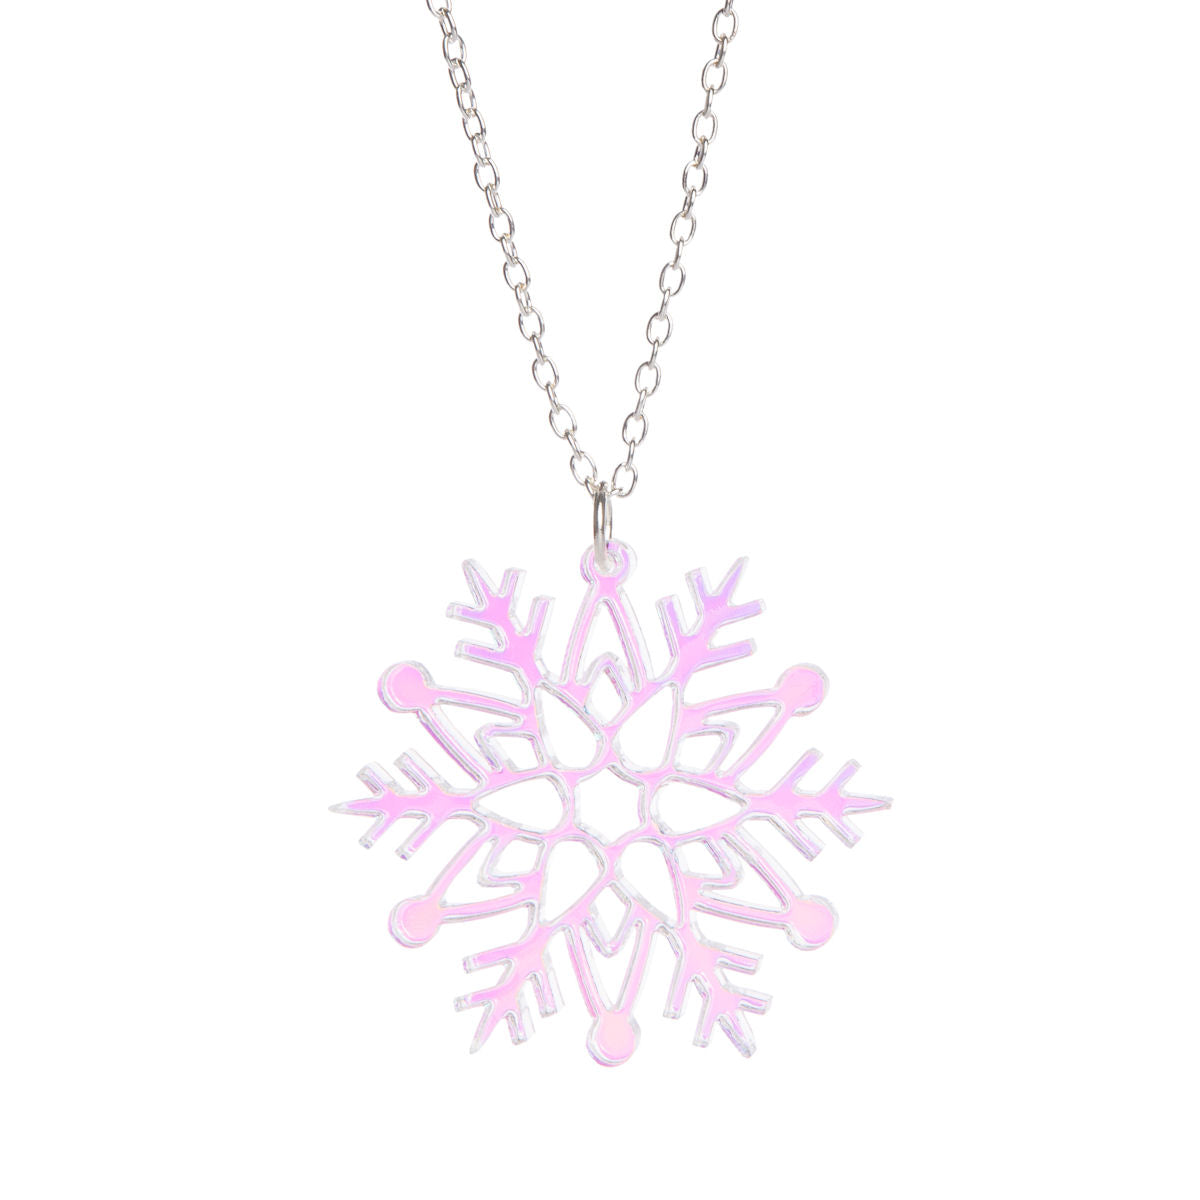 Sugar & Vice Snowflake Necklace